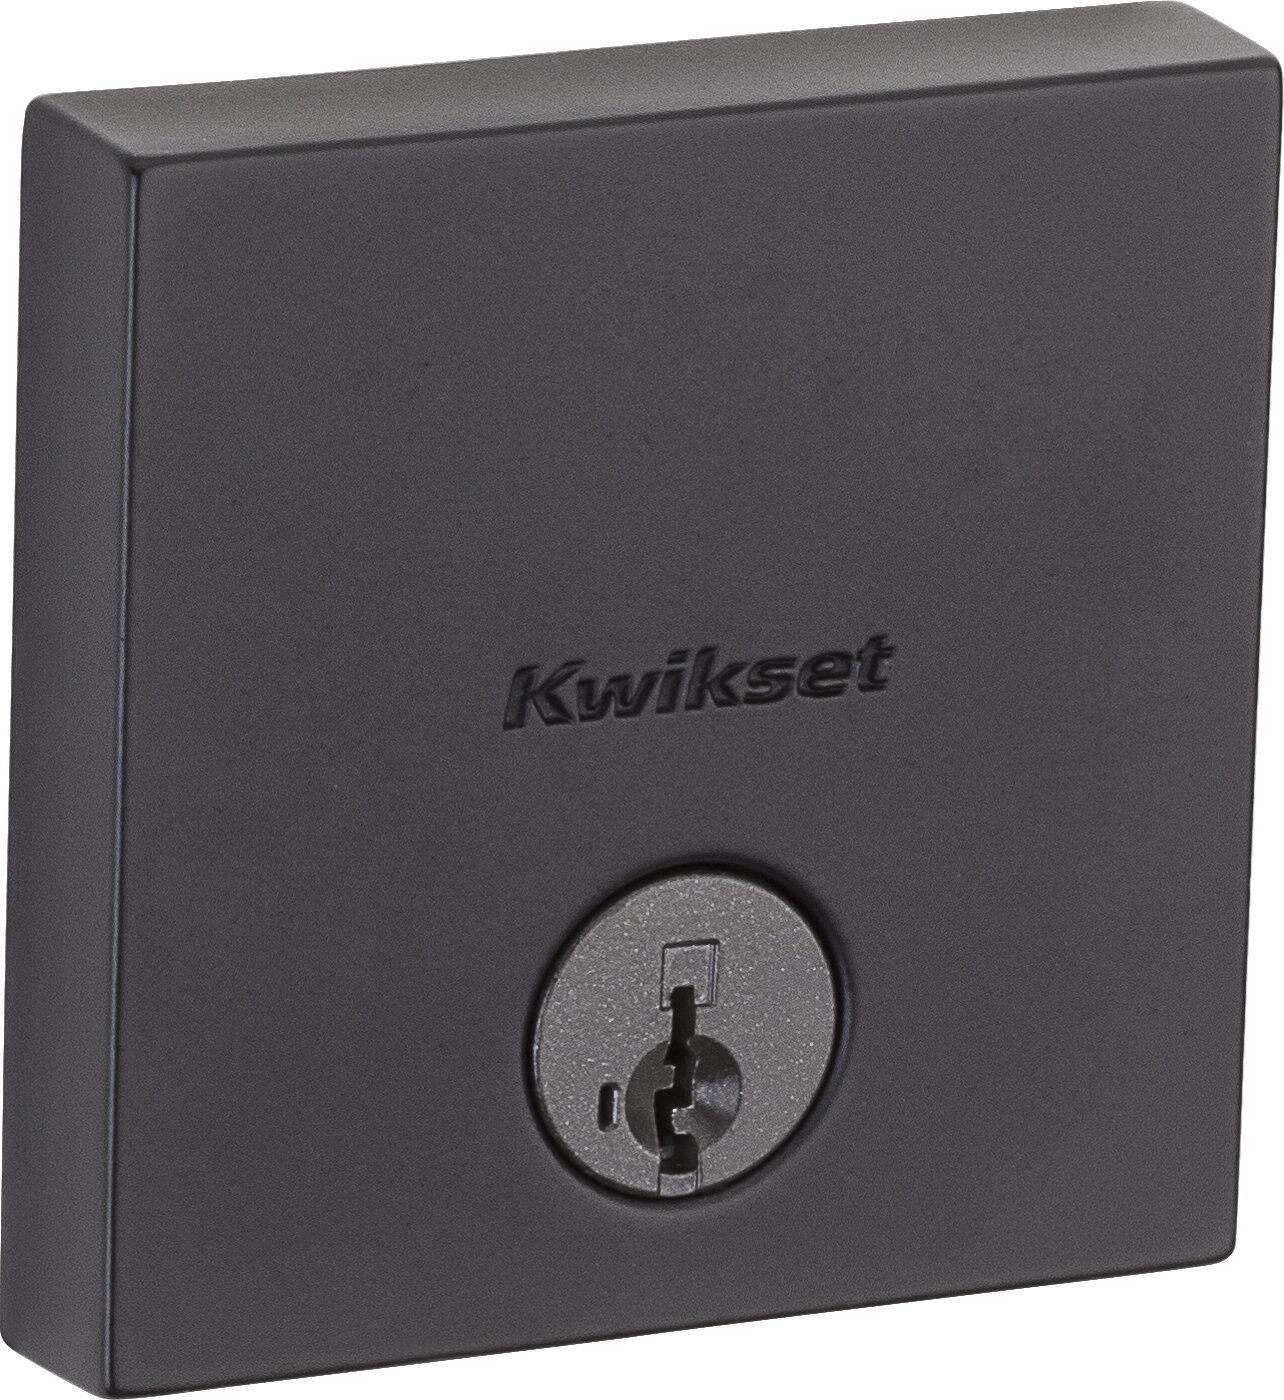 Kwikset Downtown Single Cylinder Deadbolt Featuring Smartkey With Square Rosette Reviews Wayfair